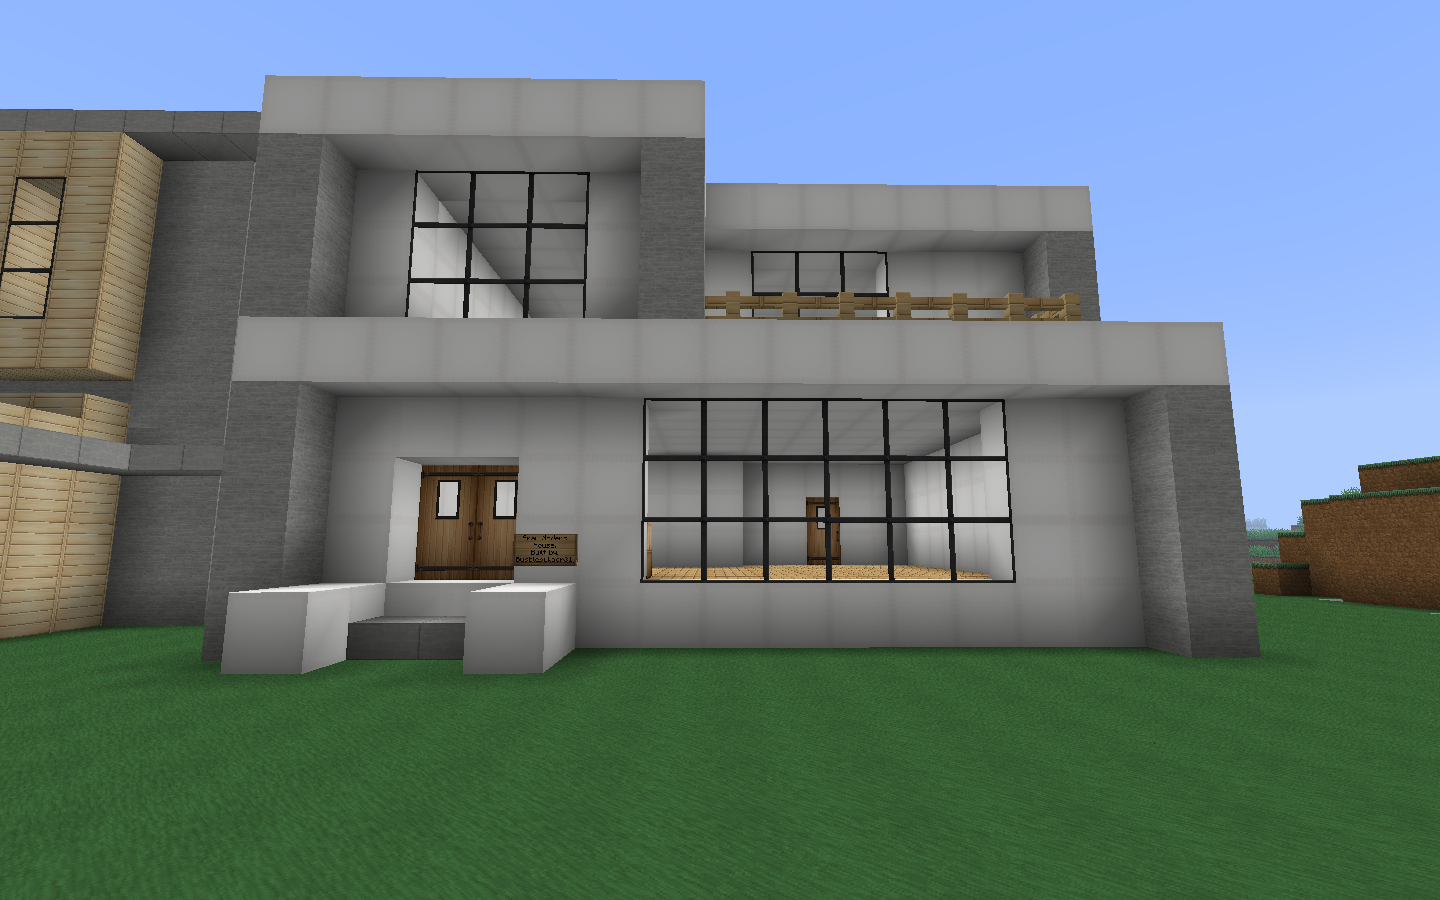 Bubblez minecraft blog - Modern house minecraft ...